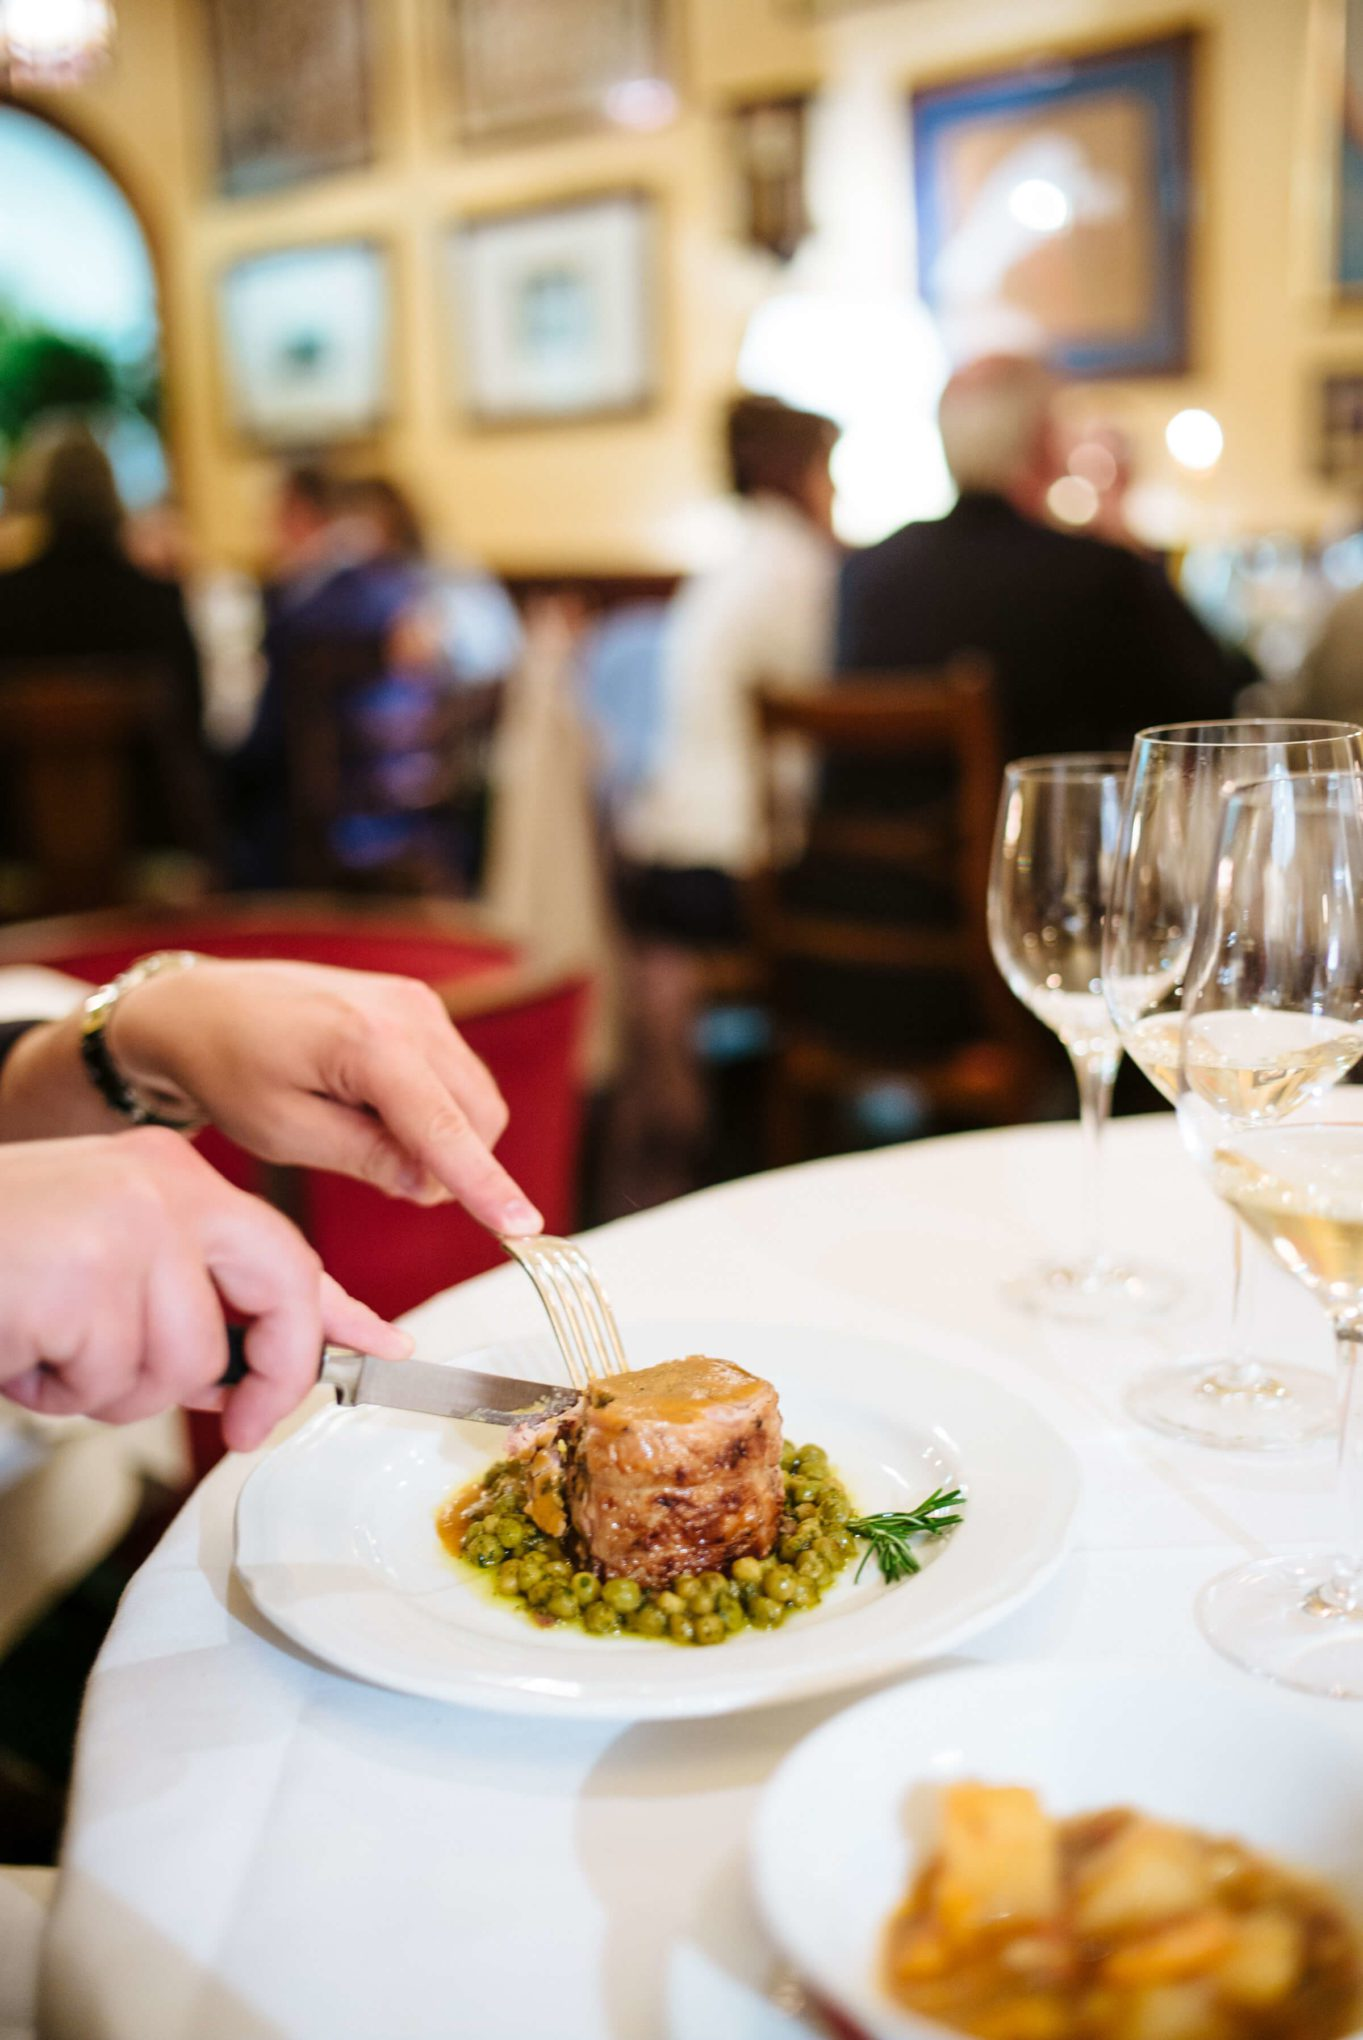 roasted leg of lamb, off the bone, and rolled with artichoke, sage, rosemary, garlic and black pepper, served with green peas and prosciutto at Ristorante Cibreo in Florence, The Taste Edit